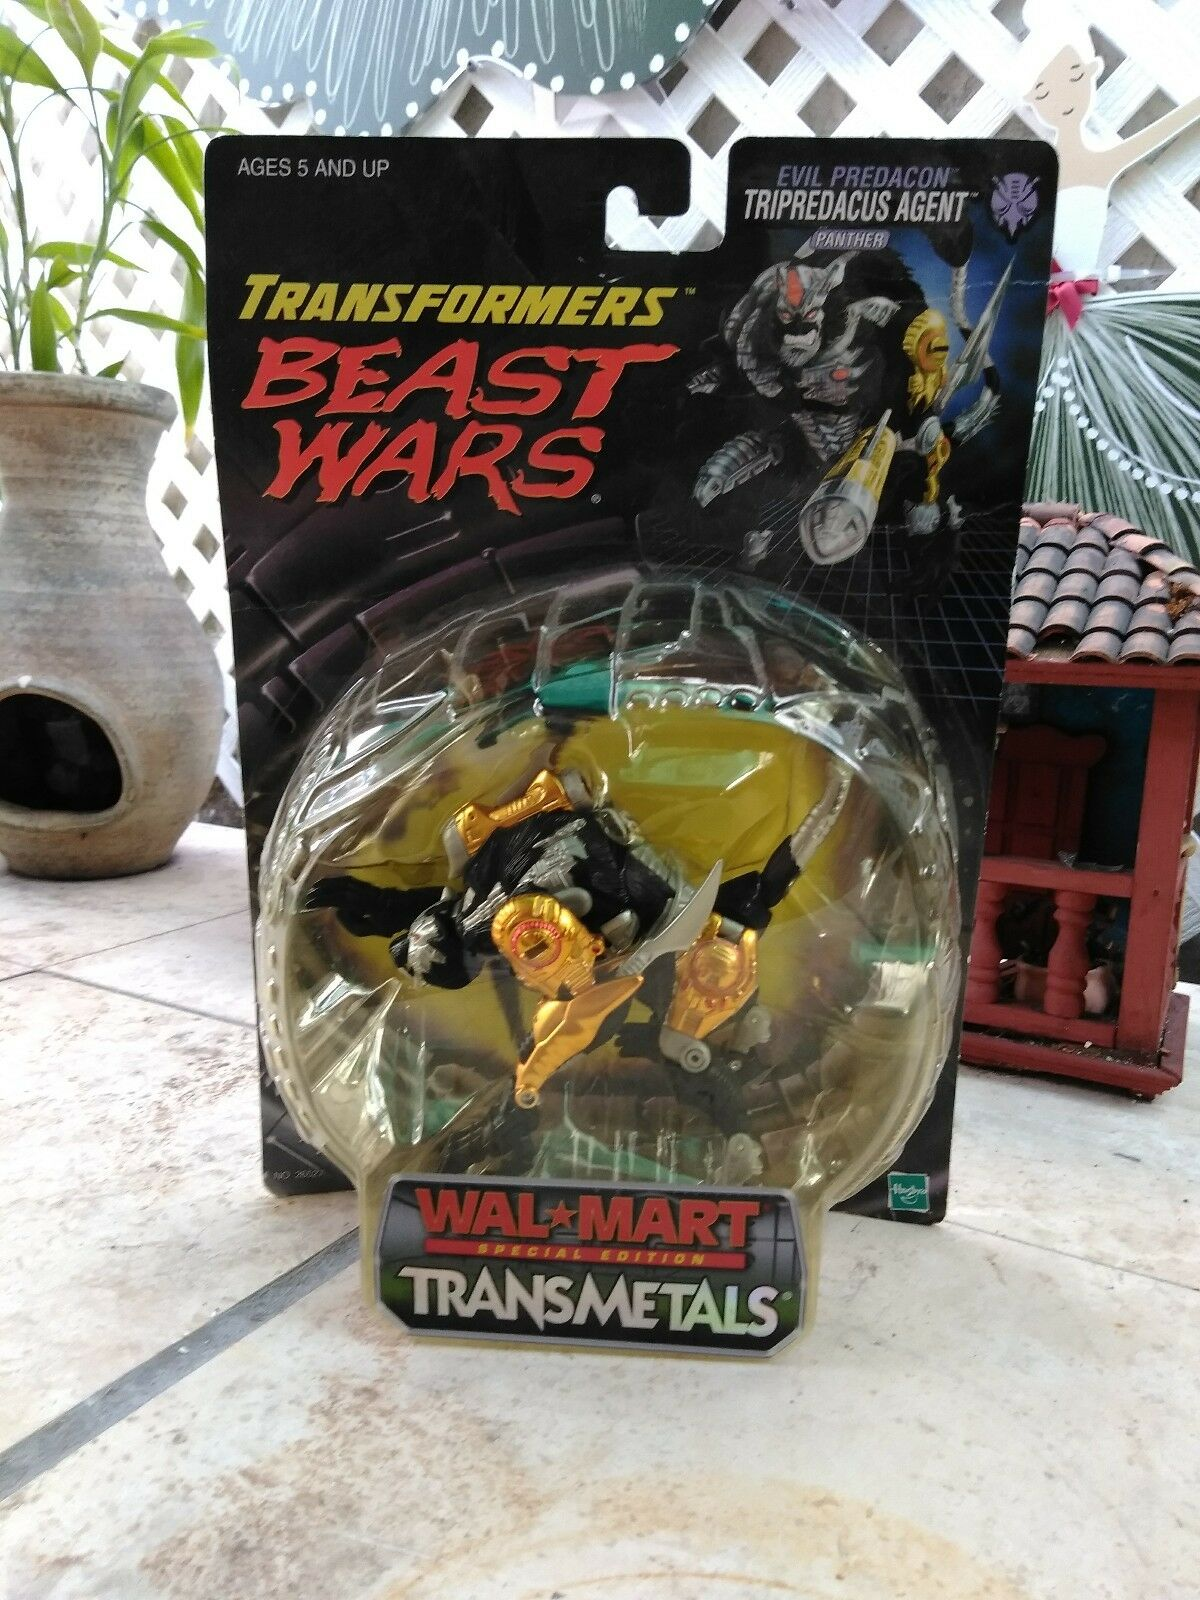 Japanese 2 pack and Walmart transformers beast wars triprotacus agent